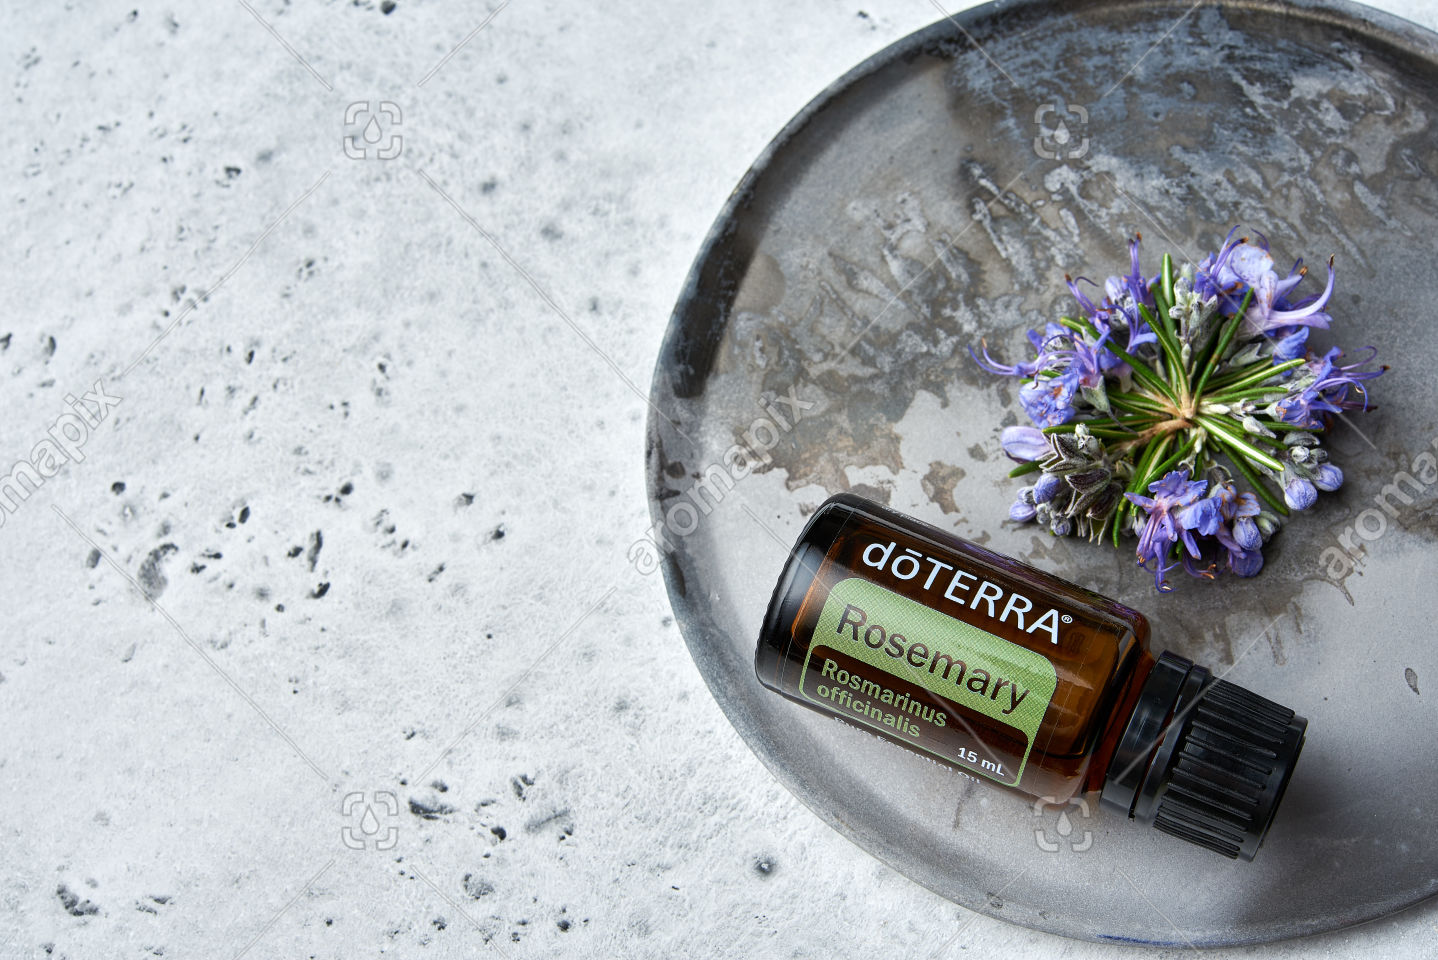 doTERRA Rosemary and rosemary flowers on white